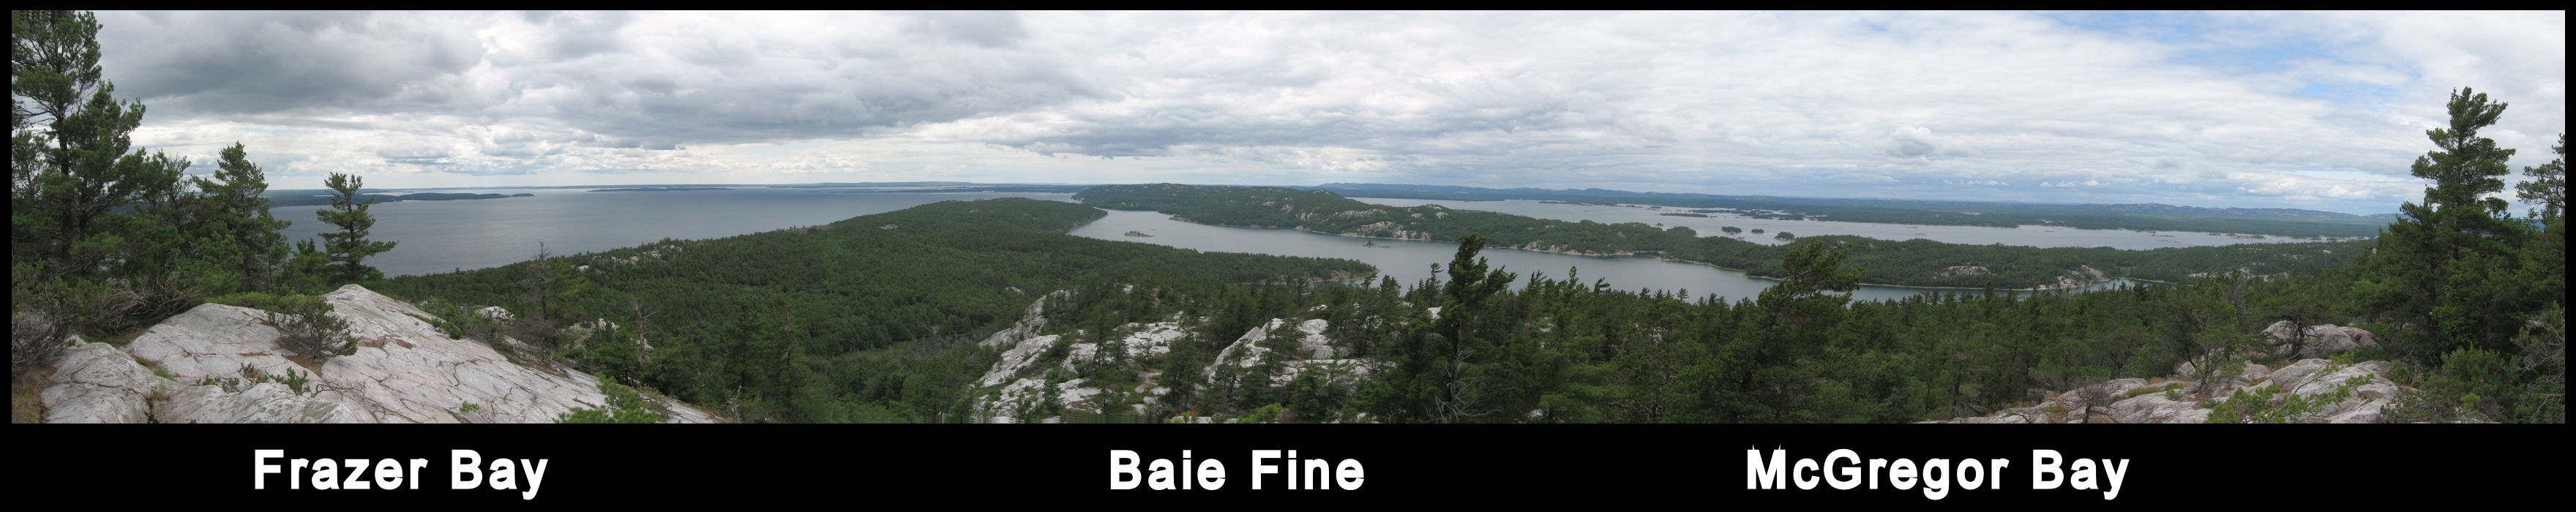 Hike To The Top Of Frazer Bay Hill